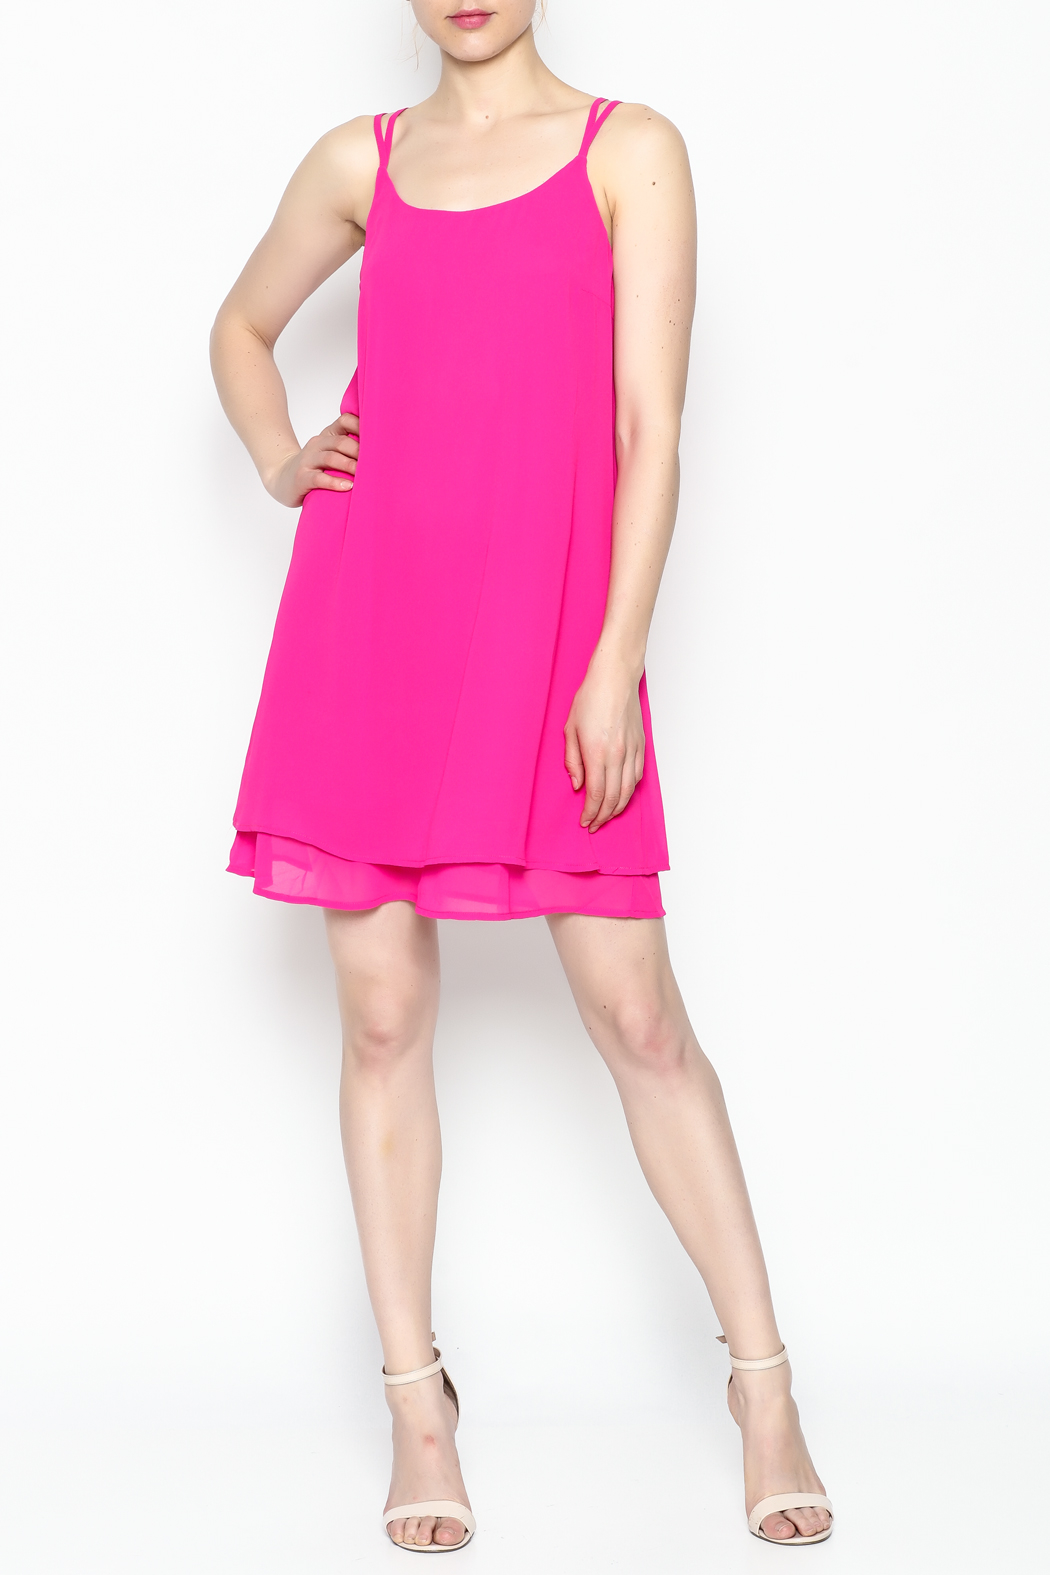 HYFVE Fuchsia Dress - Side Cropped Image